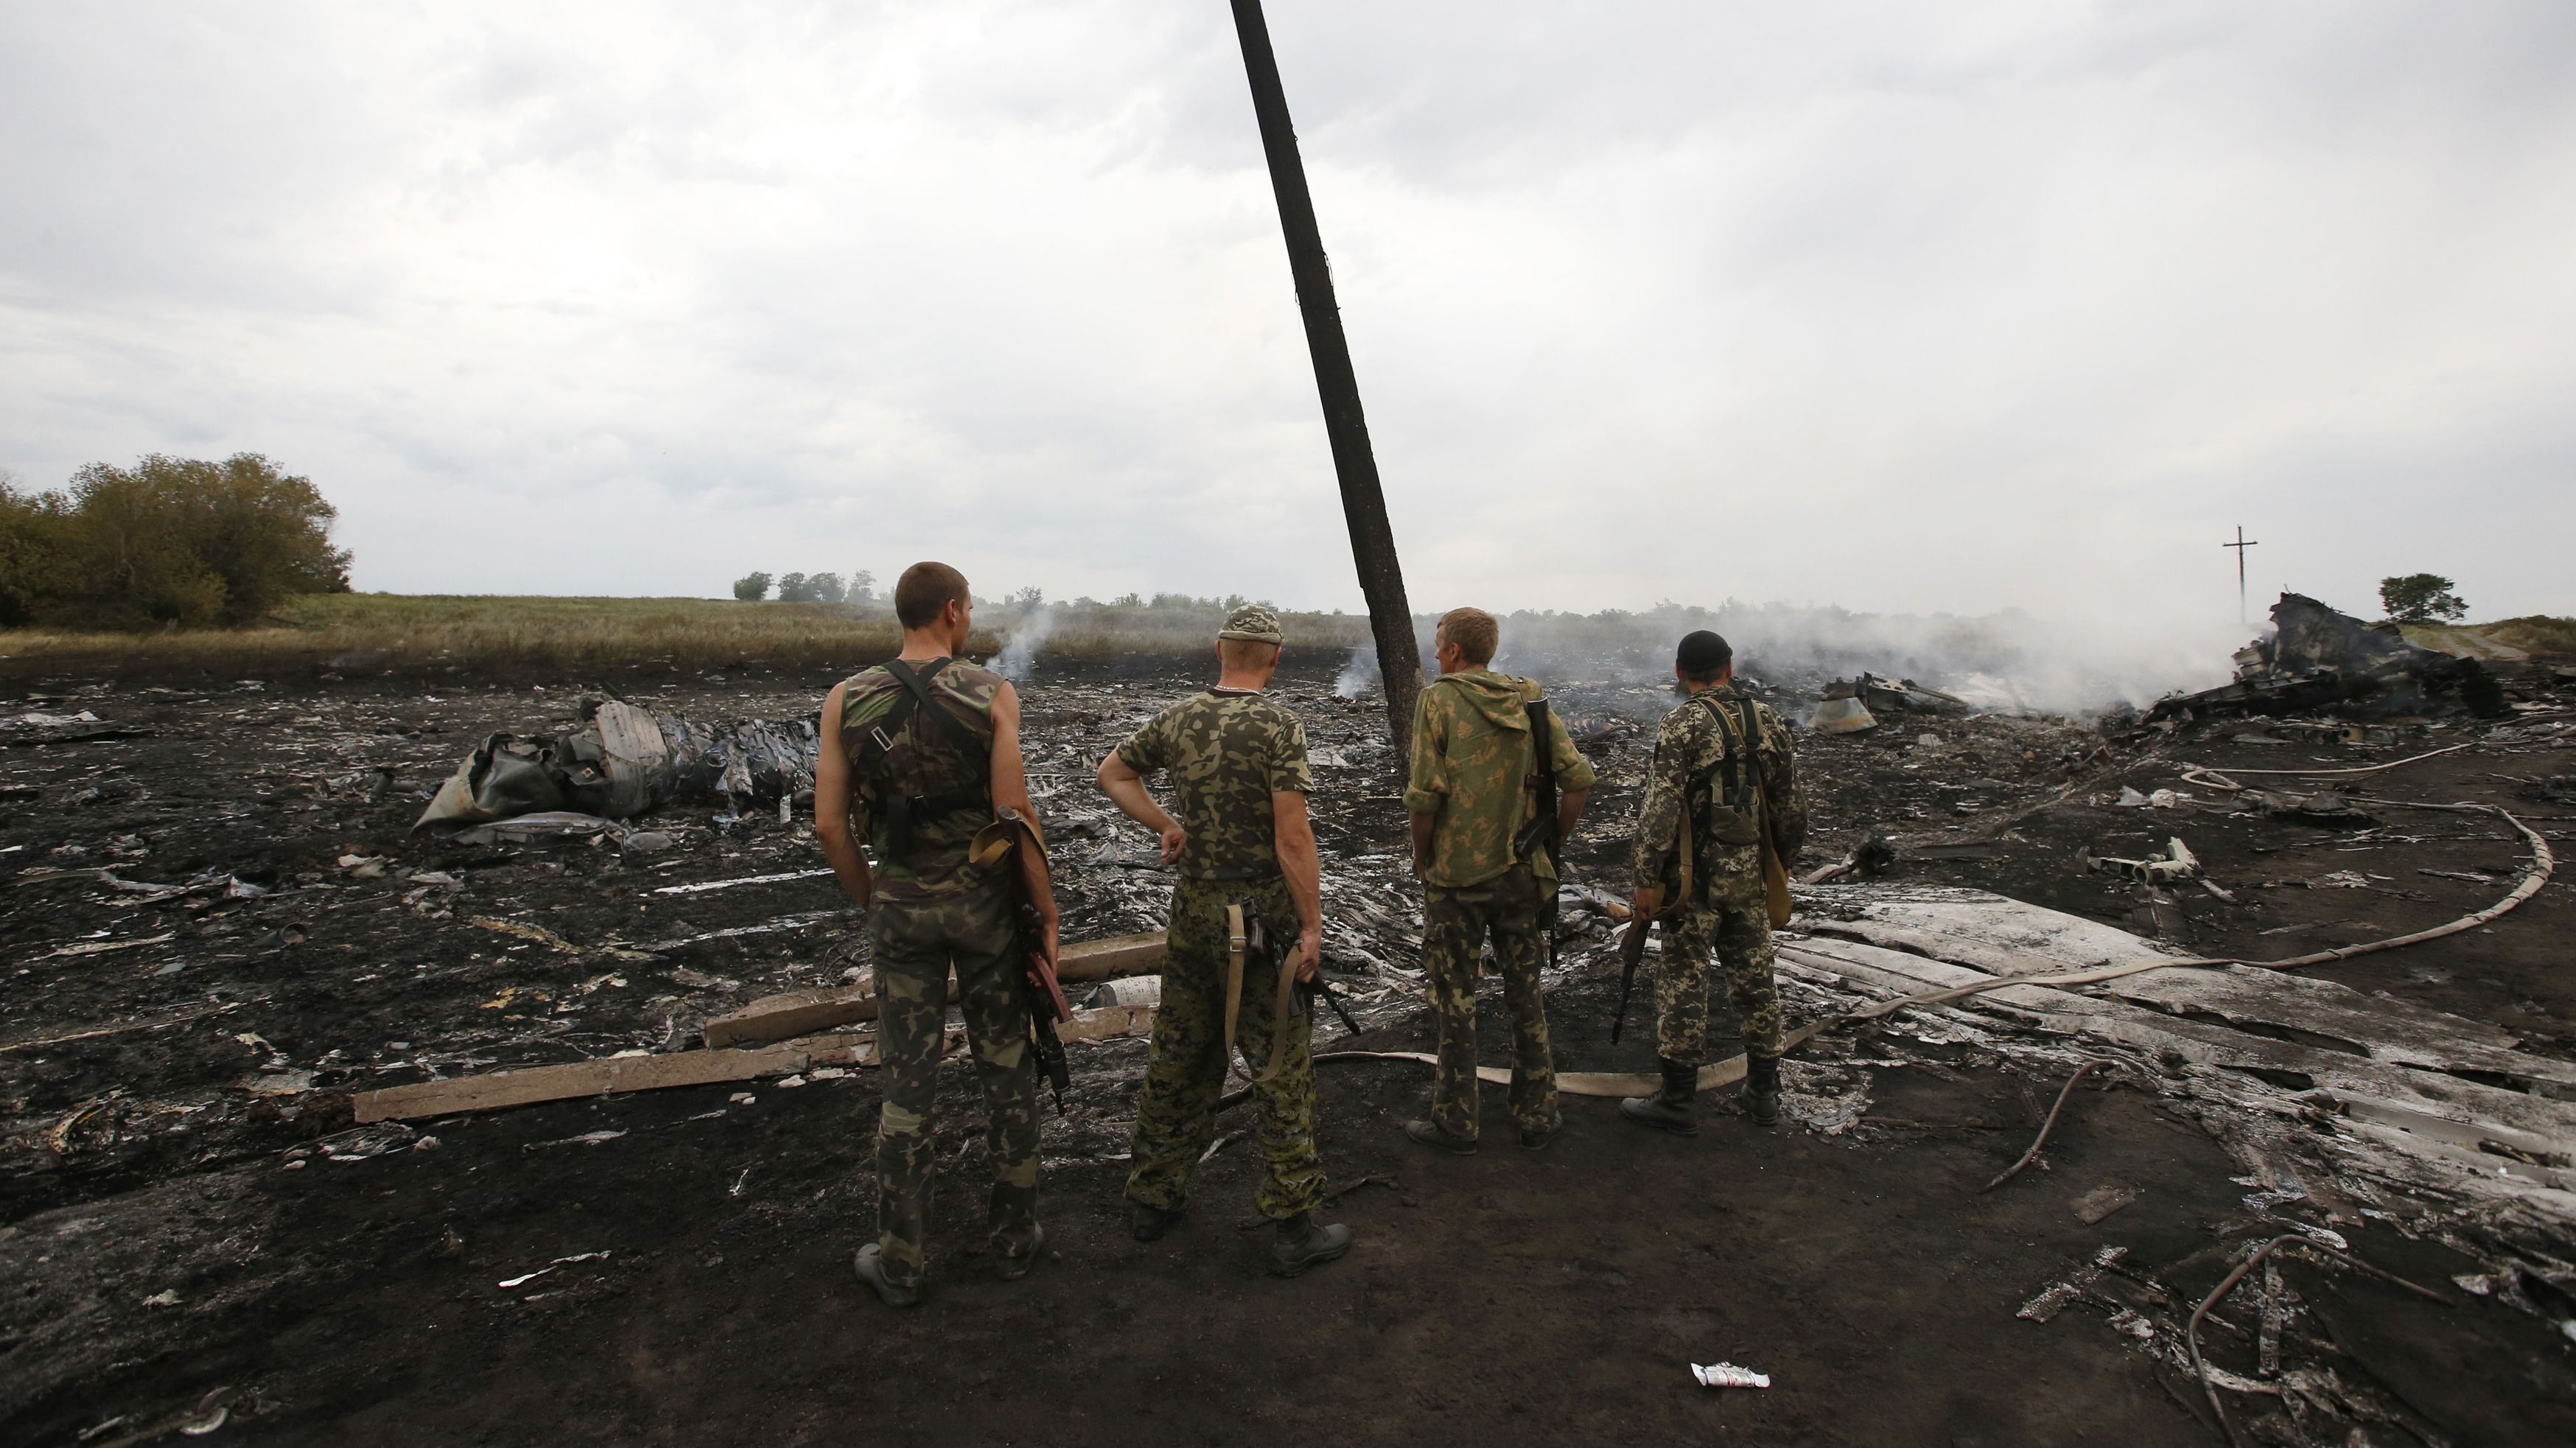 Armed pro-Russian separatists stand at the site of a Malaysia Airlines Boeing 777 plane crash near the settlement of Grabovo in the Donetsk region, July 17, 2014. The Malaysian airliner Flight MH-17 was brought down over eastern Ukraine on Thursday, killing all 295 people aboard and sharply raising the stakes in a conflict between Kiev and pro-Moscow rebels in which Russia and the West back opposing sides. REUTERS/Maxim Zmeyev